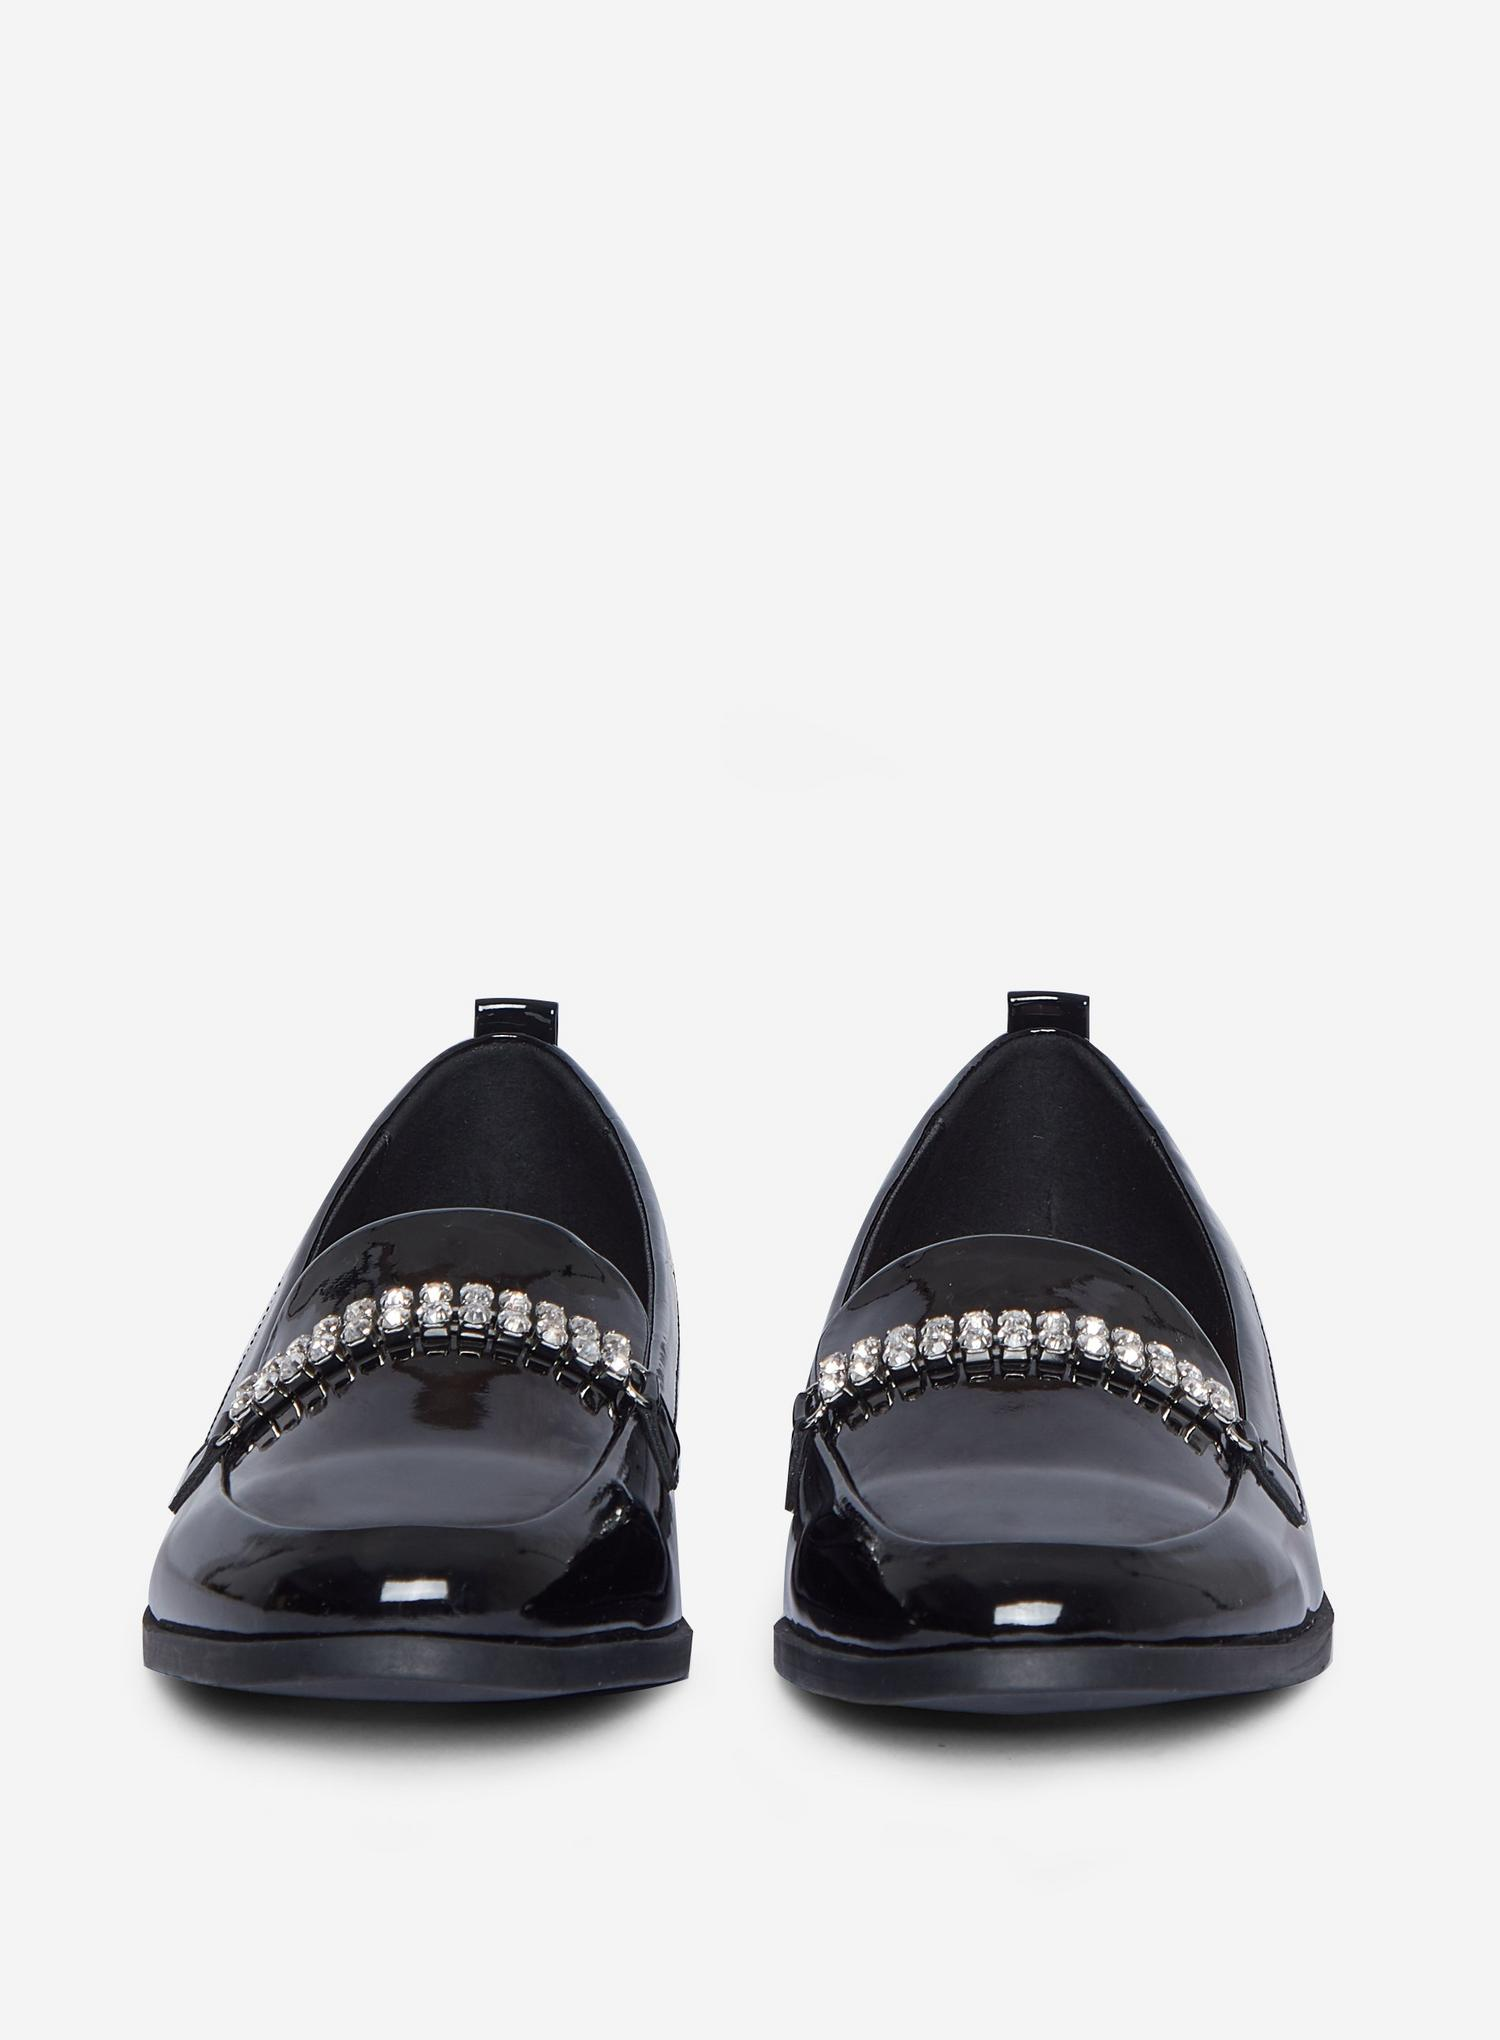 105 Black Lightning Loafers image number 3